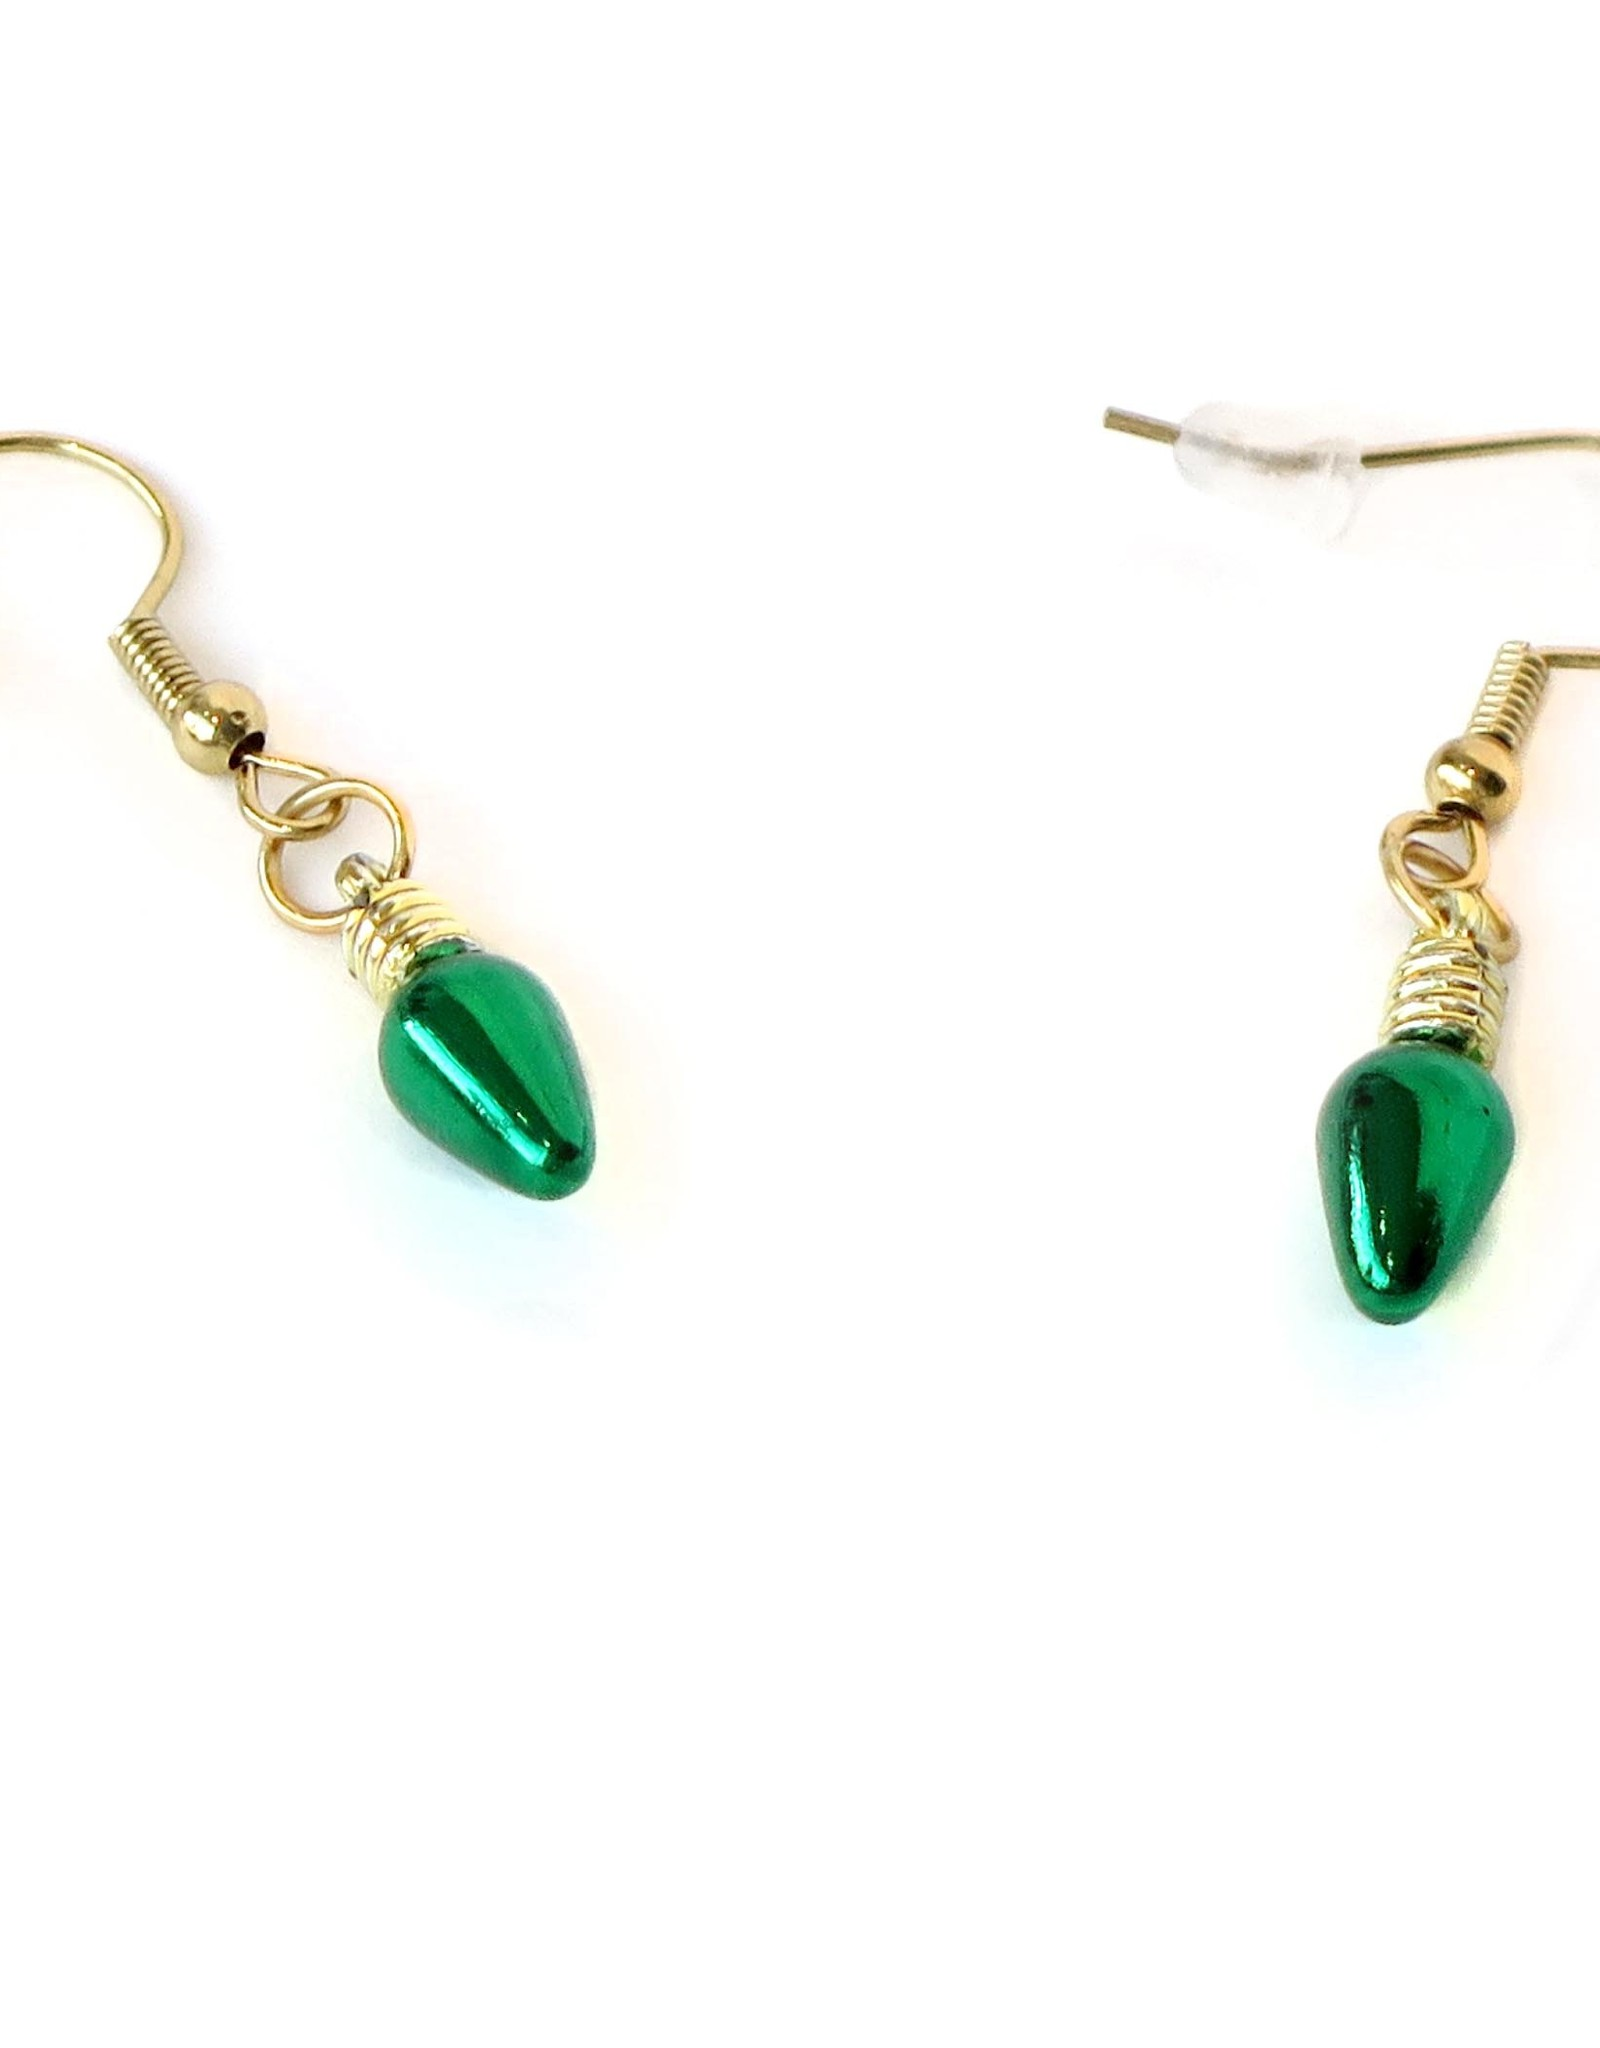 Juicey Gems Green Holiday Lights Earrings by Juicey Gems